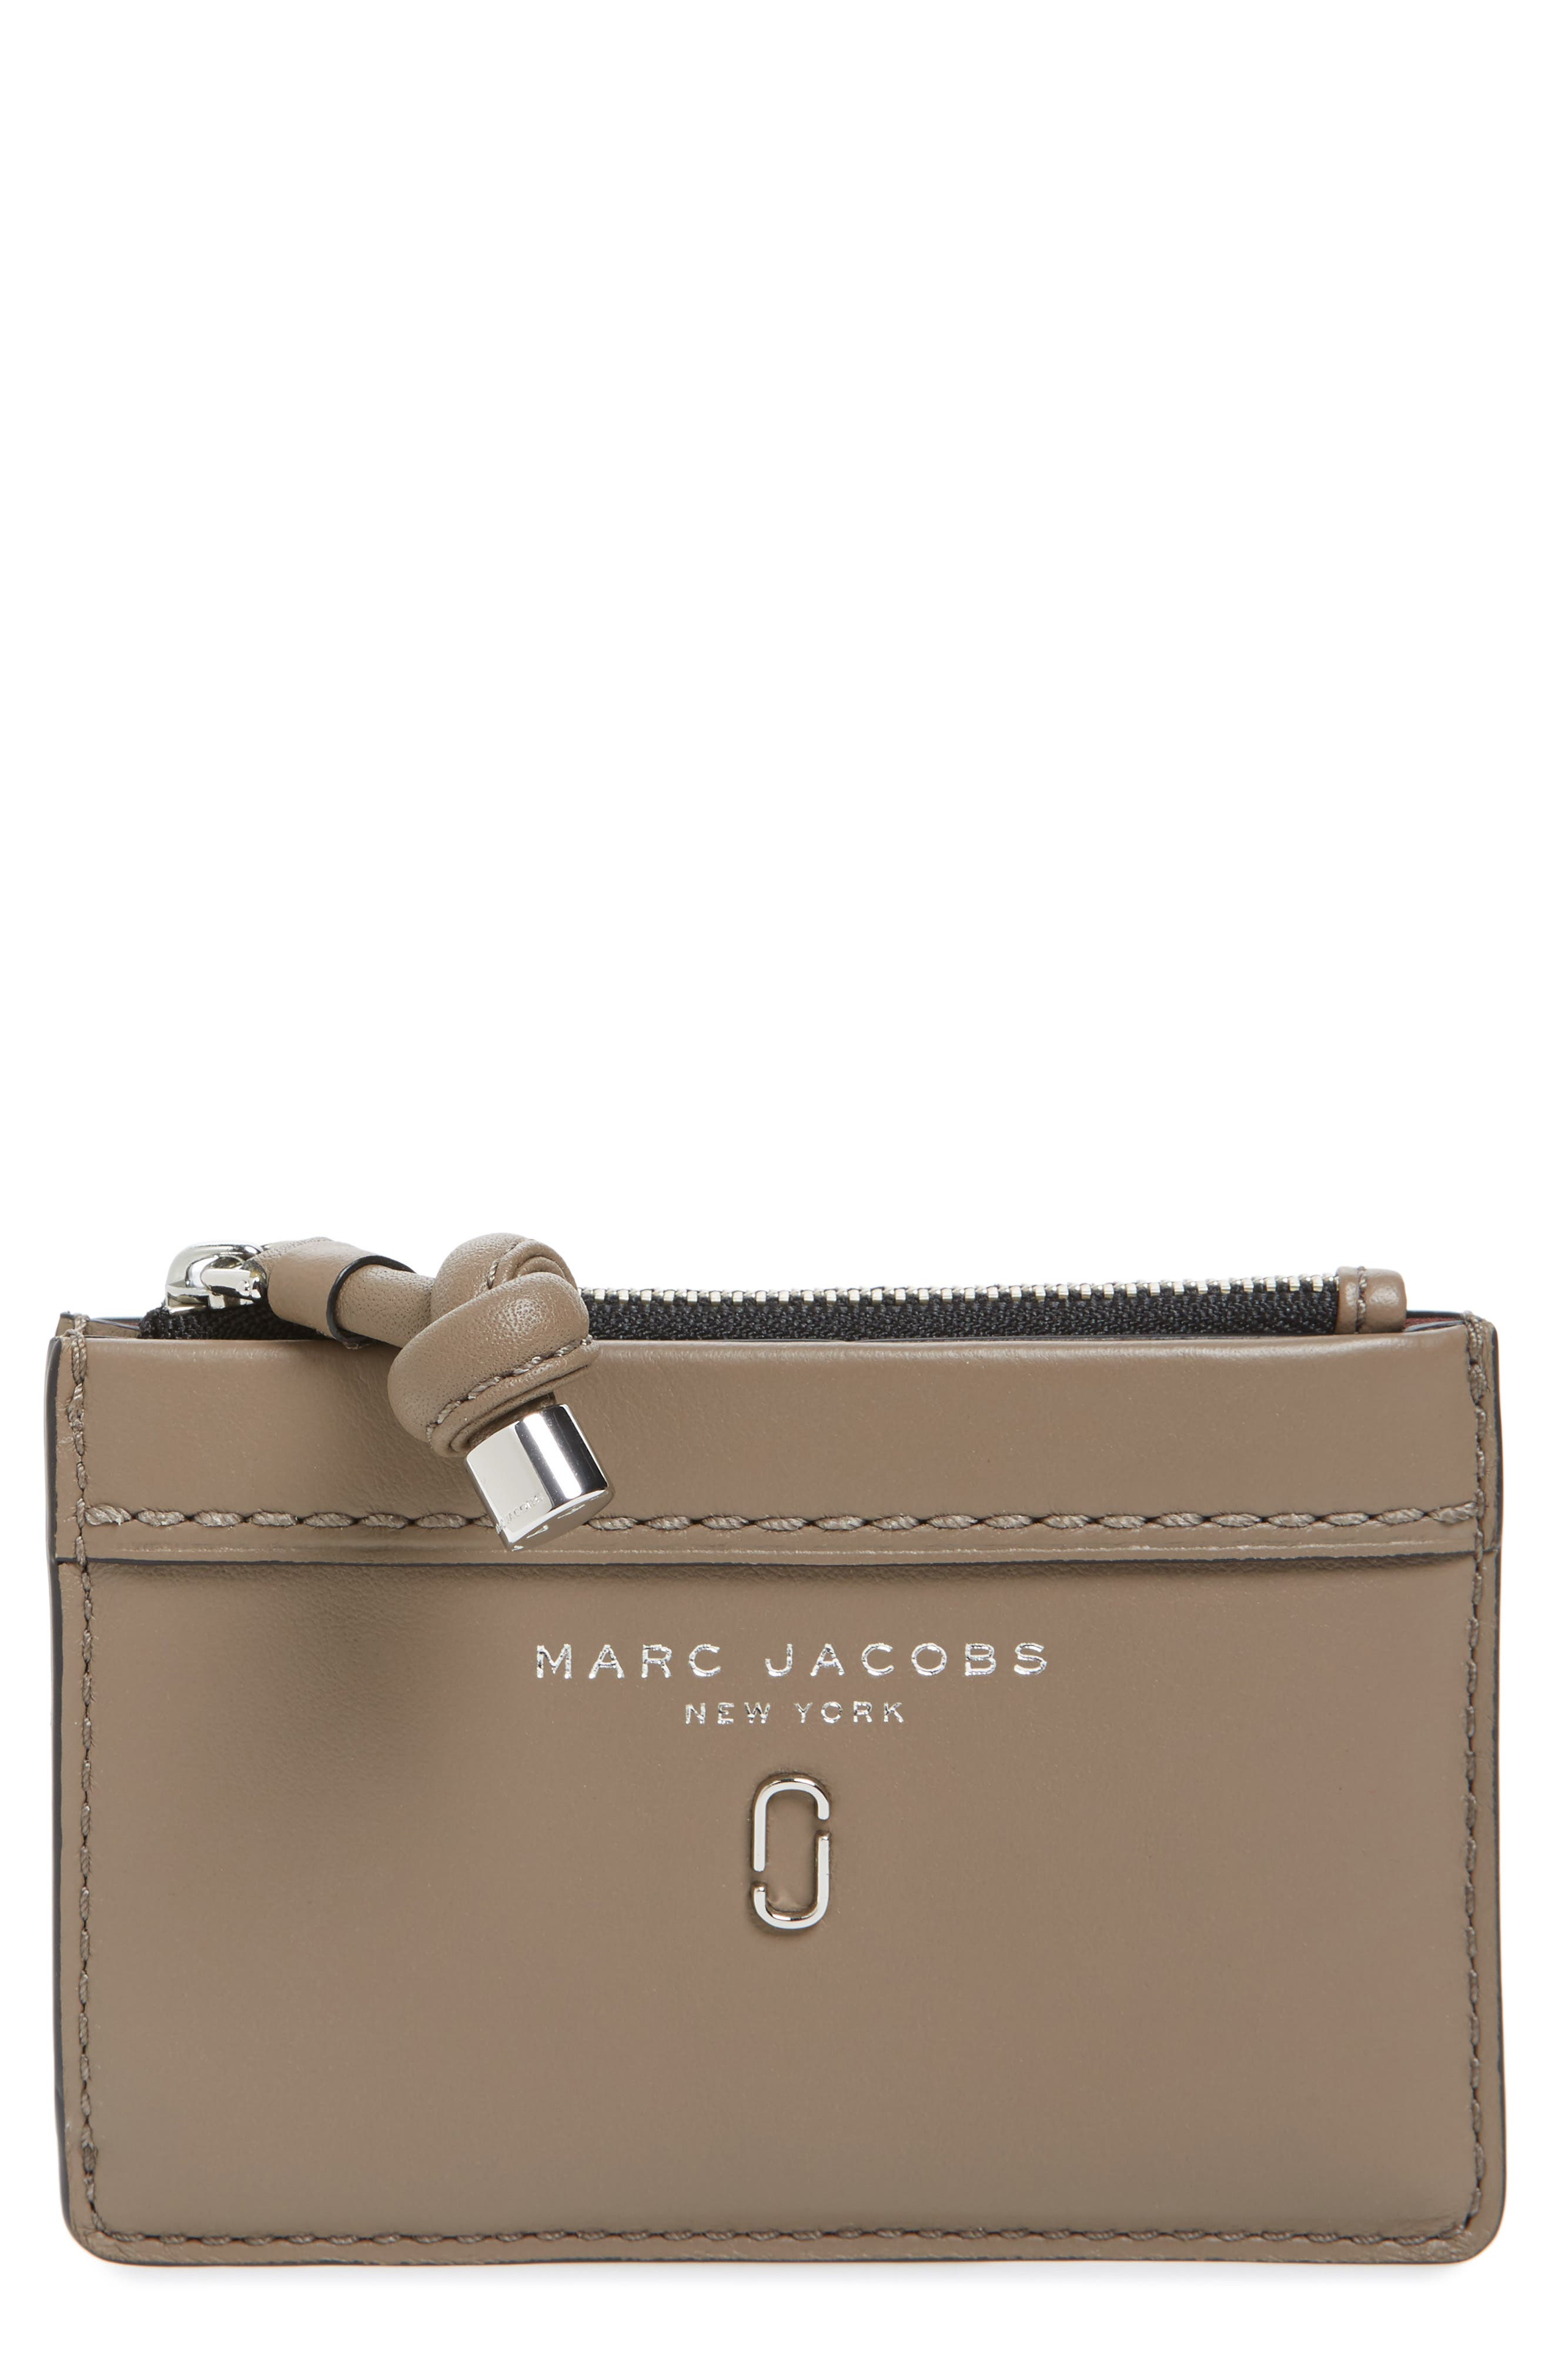 MARC JACOBS Tied Up Leather Wallet